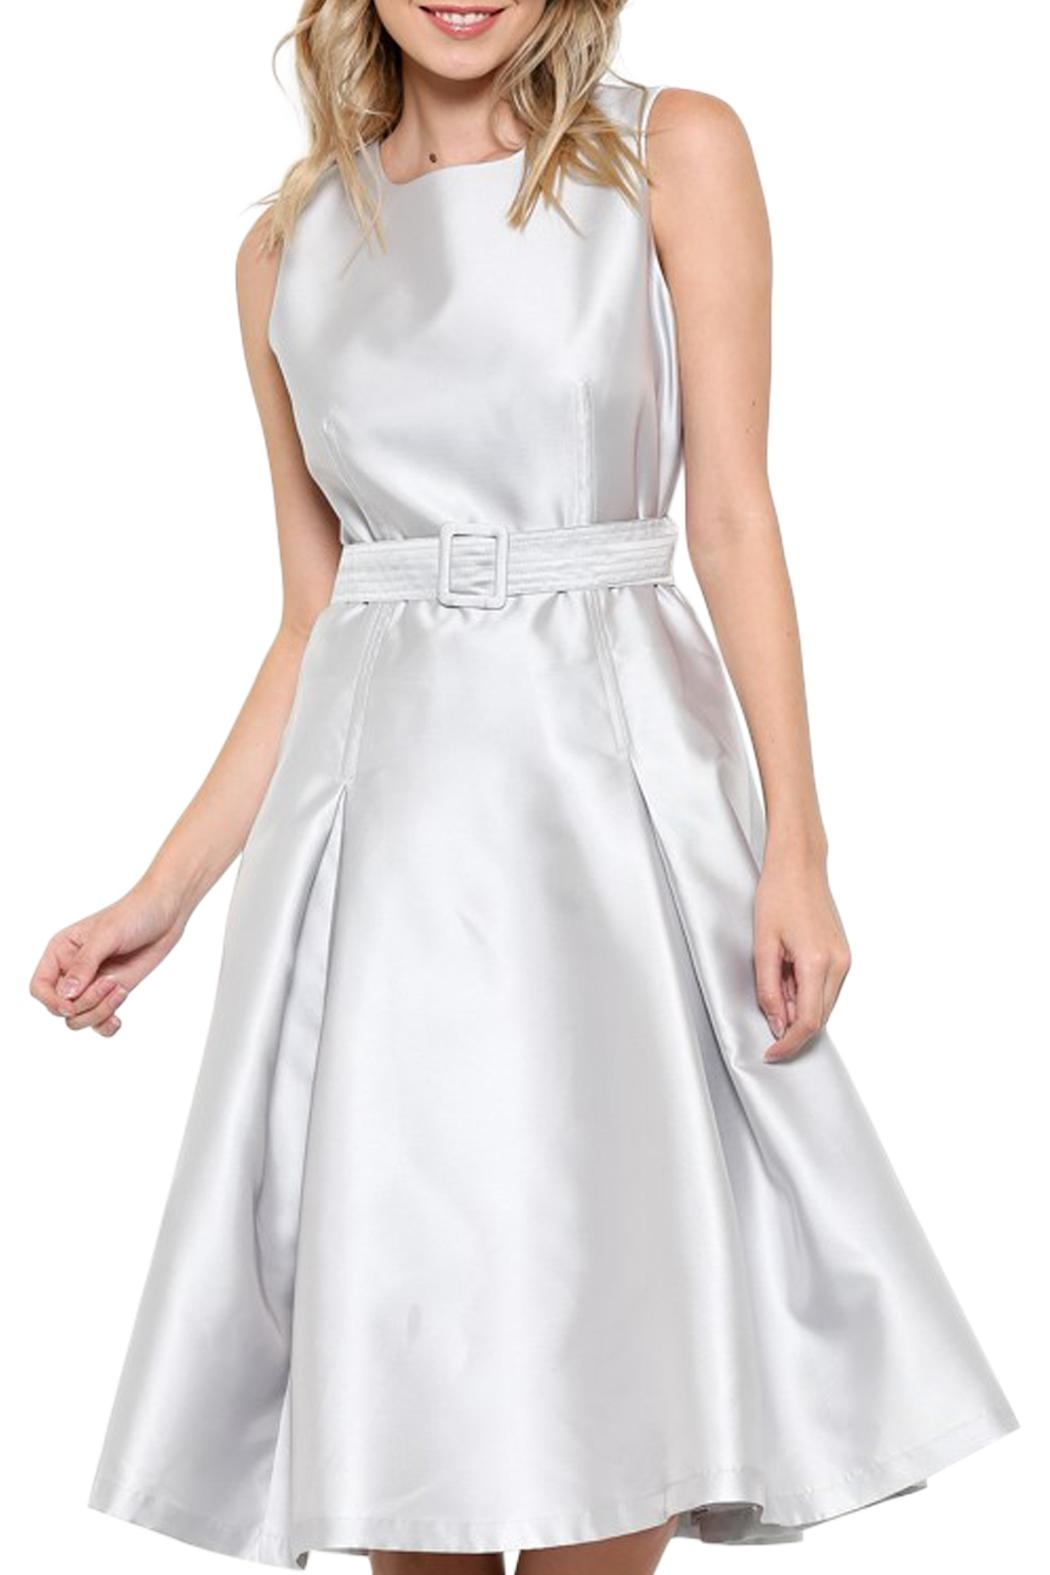 Elegance by Sarah Ruhs Belted Silver Dress - Main Image